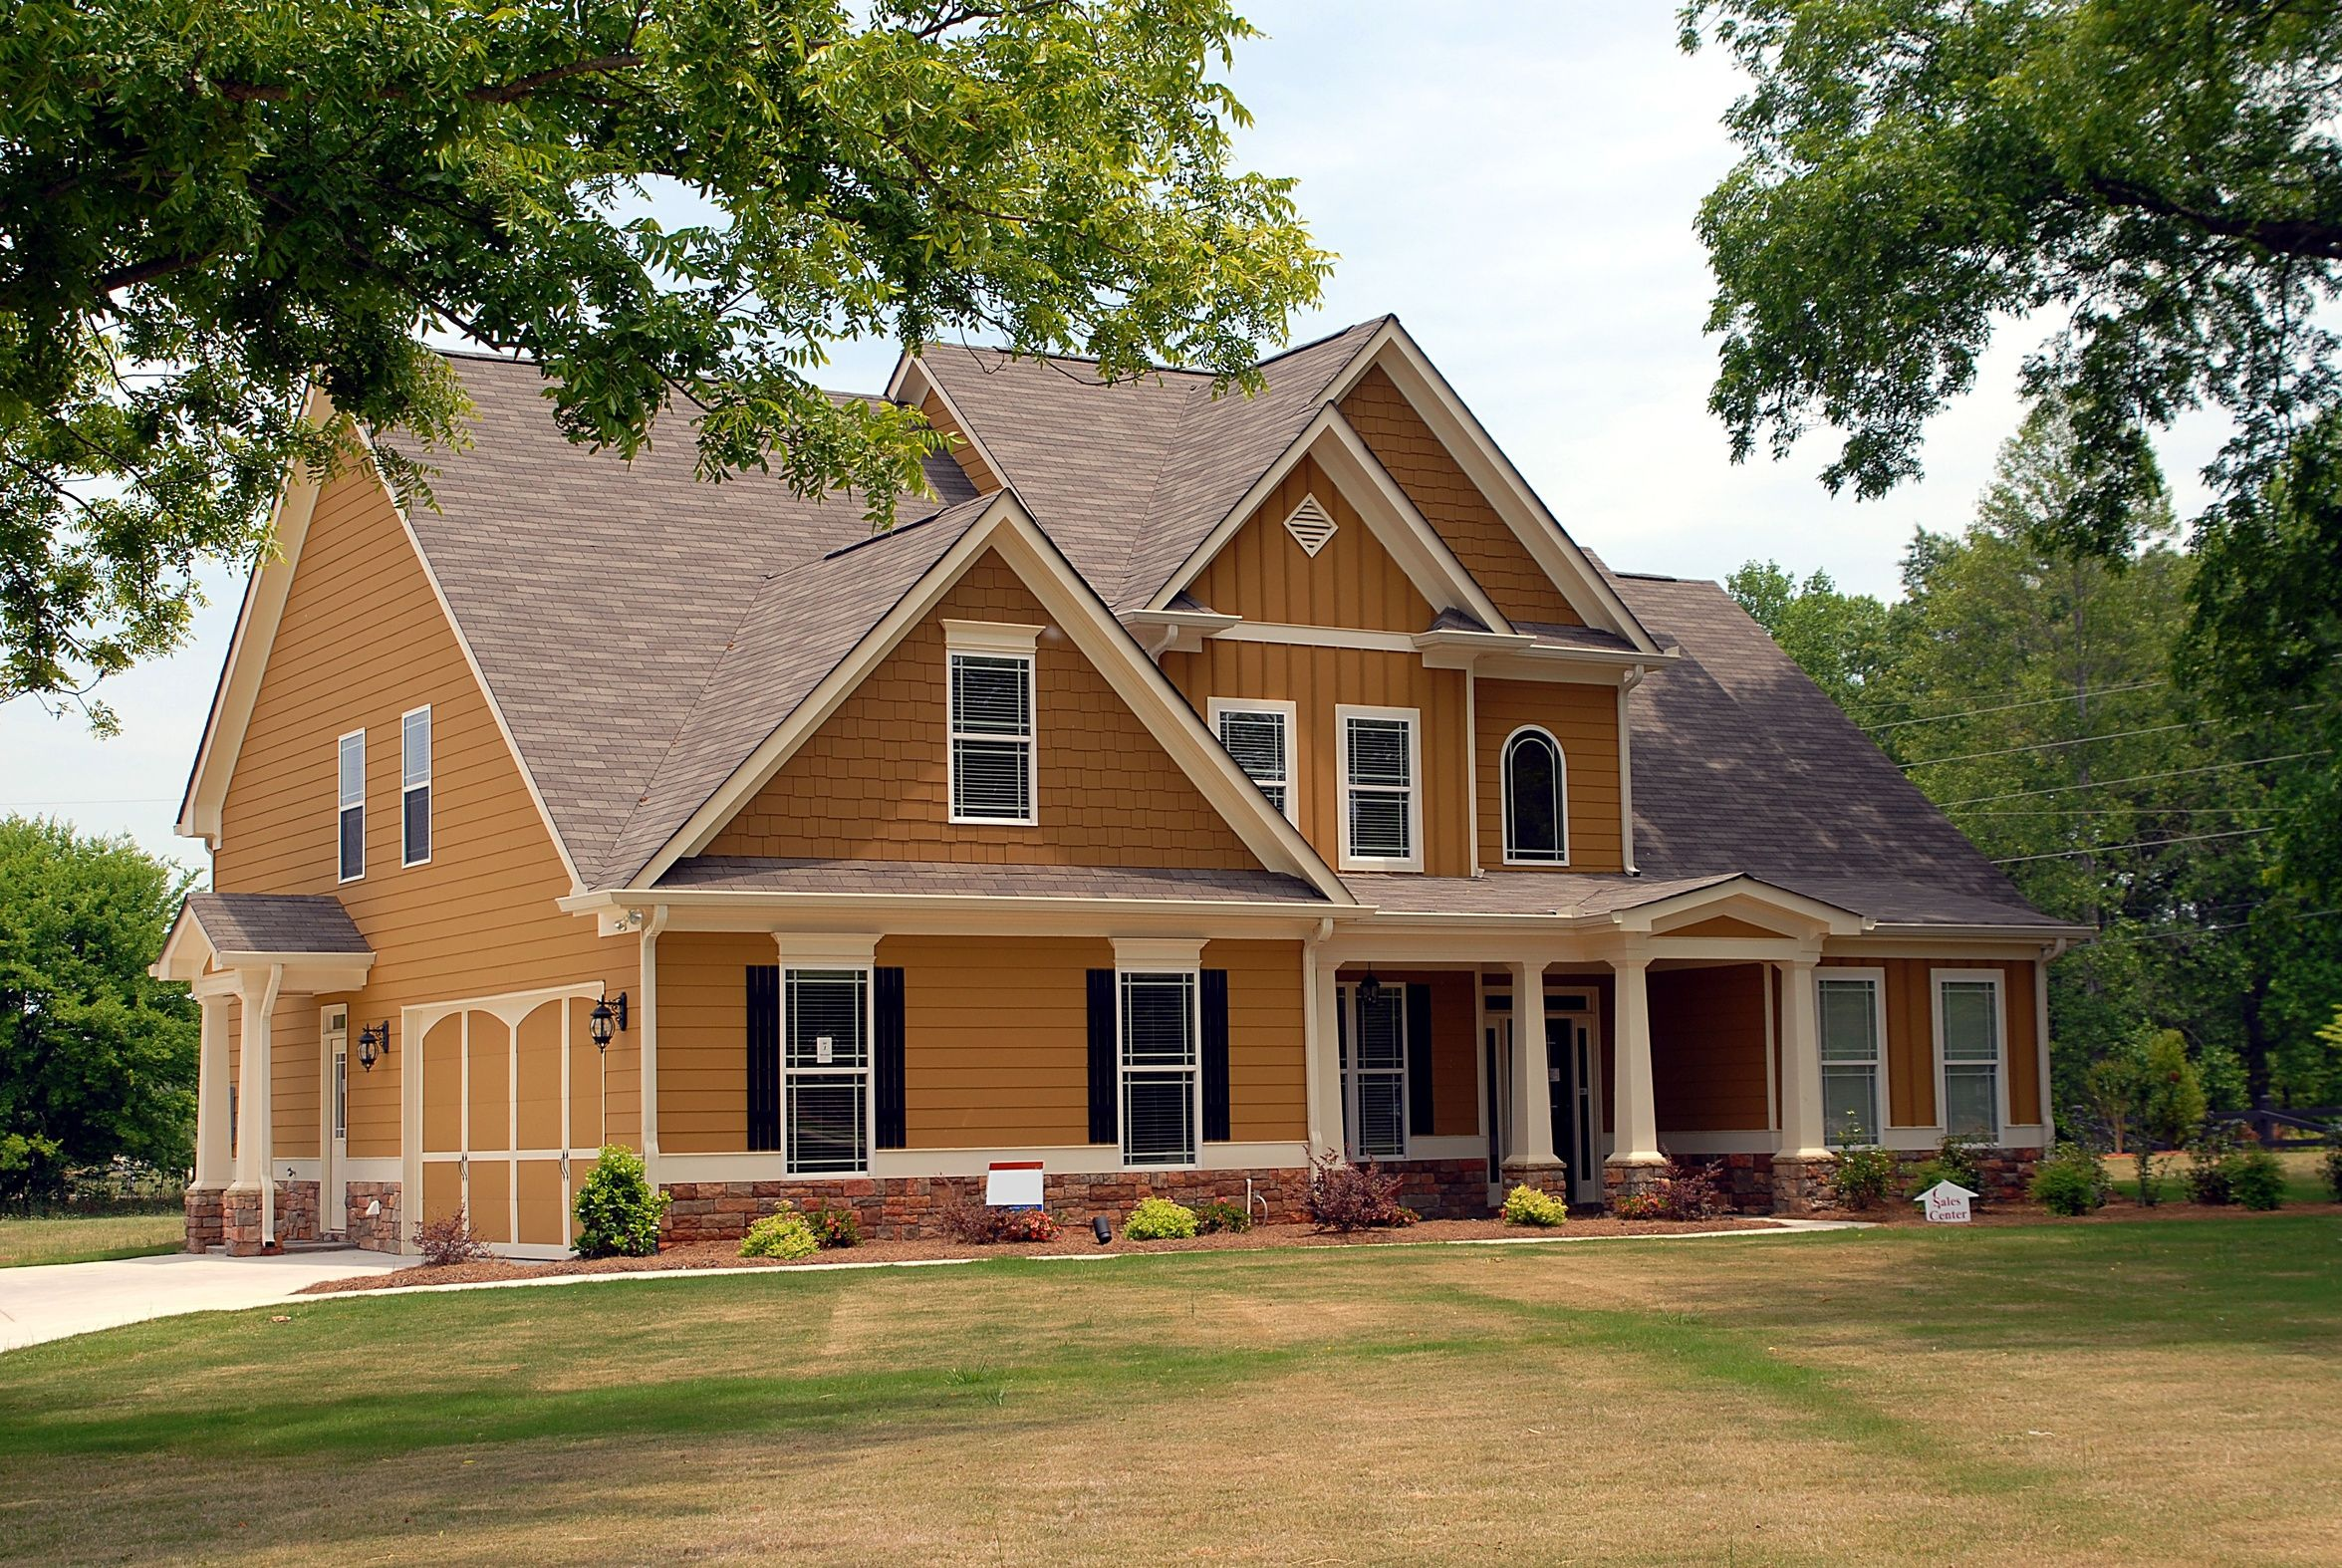 Brown exterior house paint colors looking for professional for Exterior painting